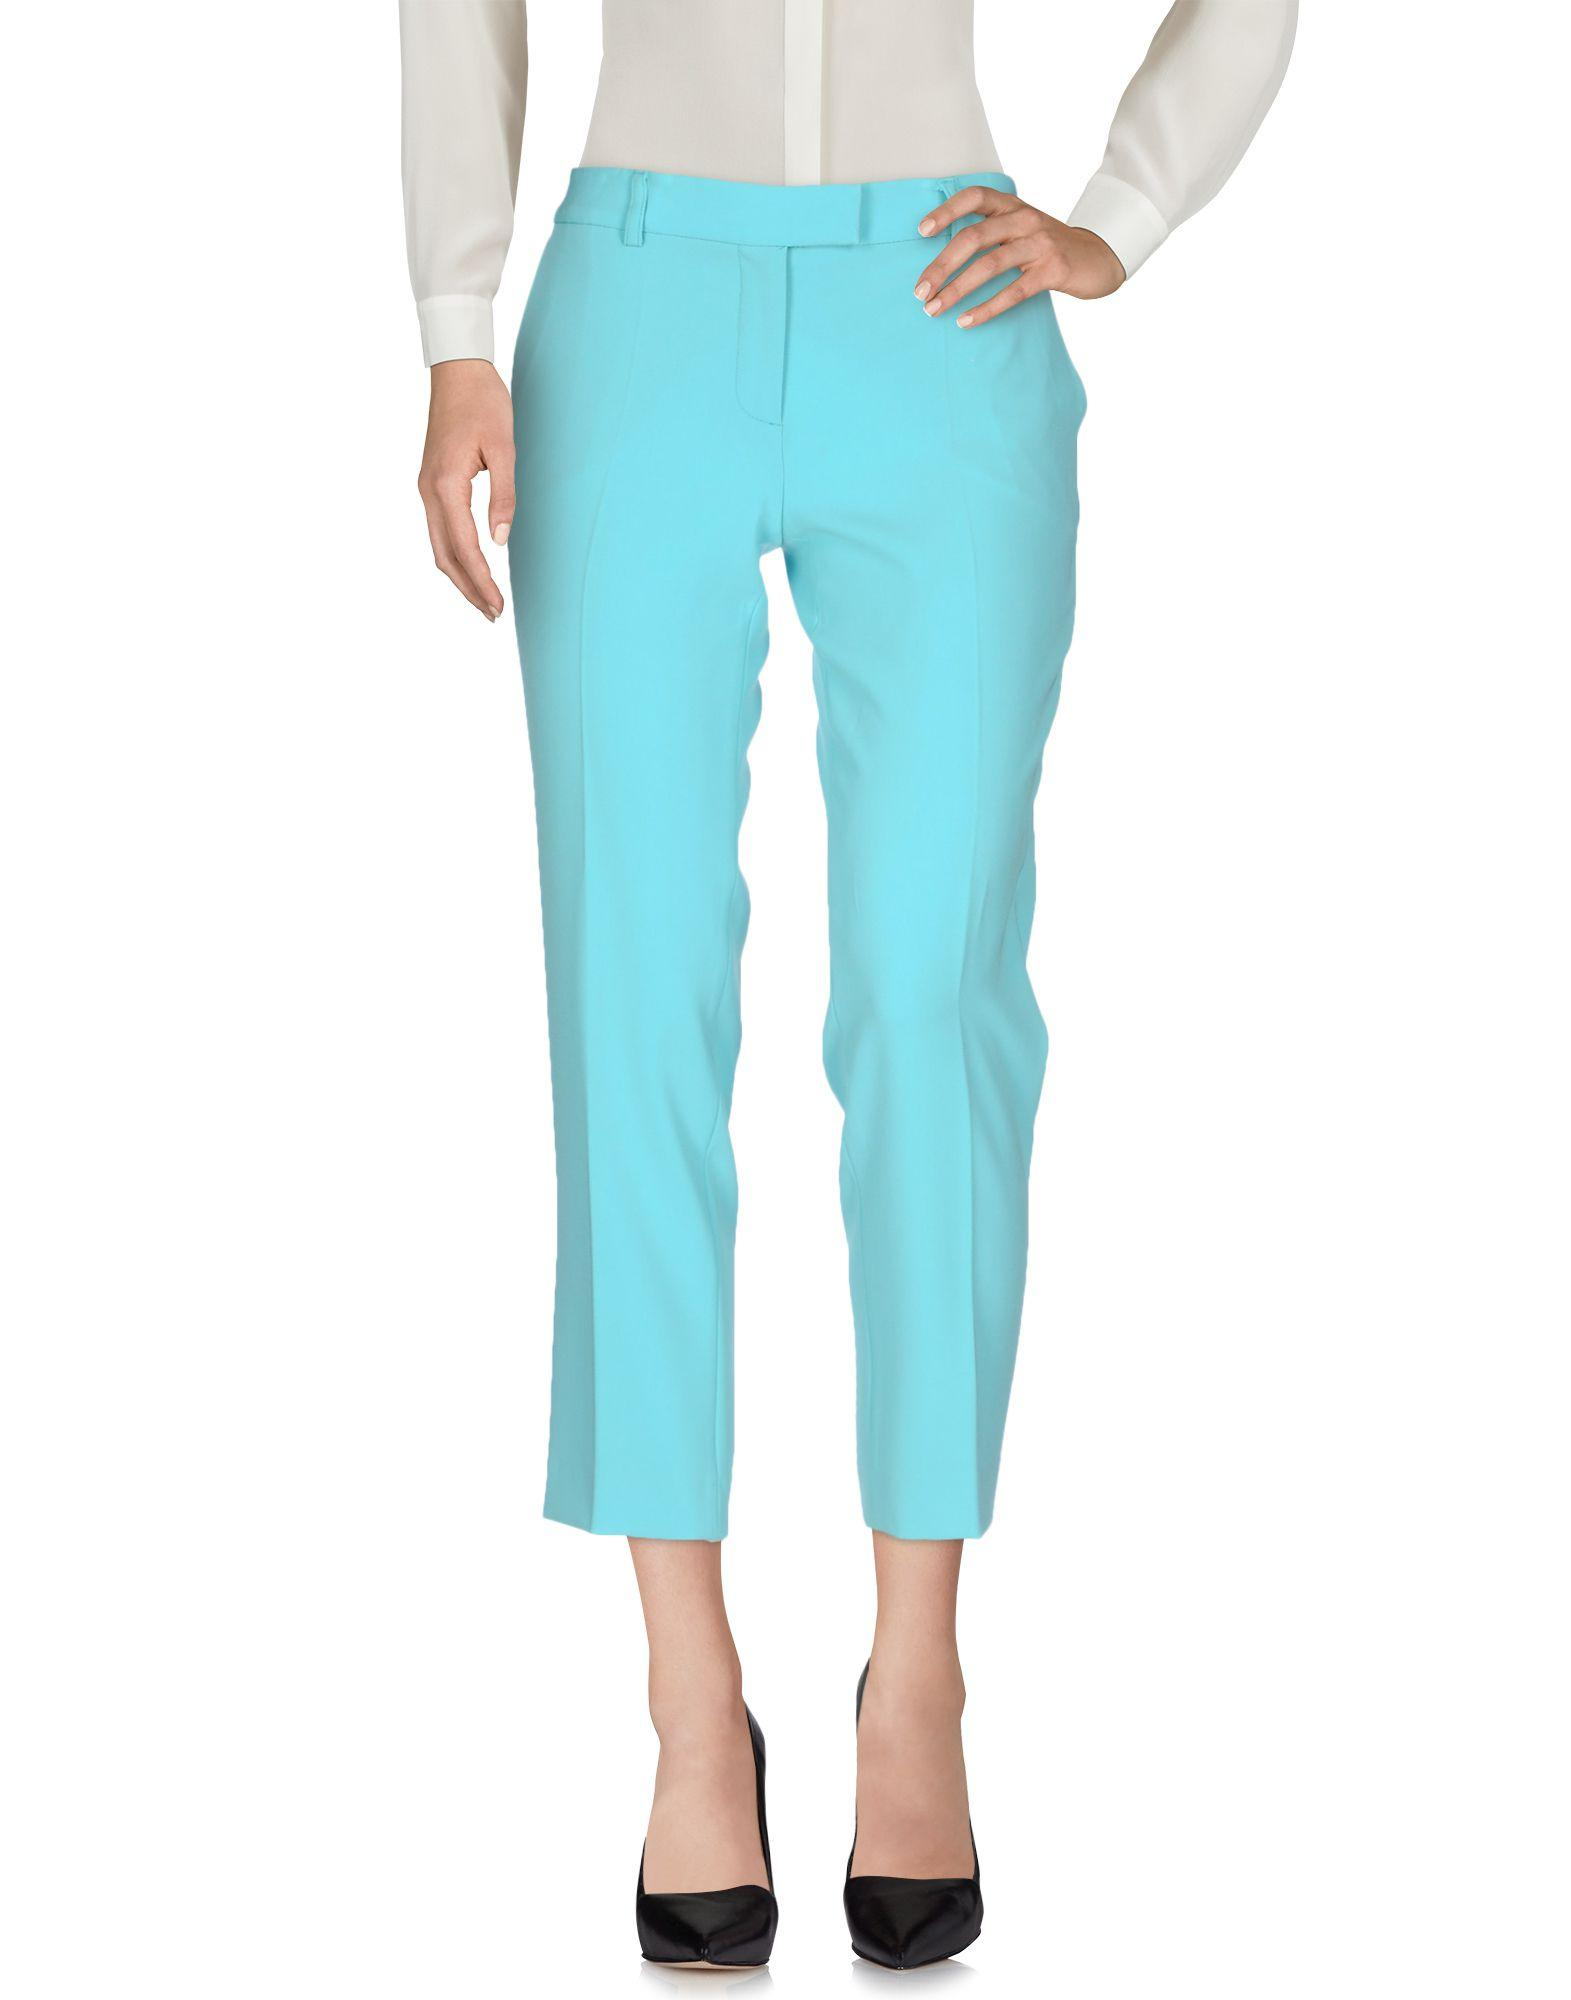 Moschino Cheap And Chic Casual Pants In Sky Blue